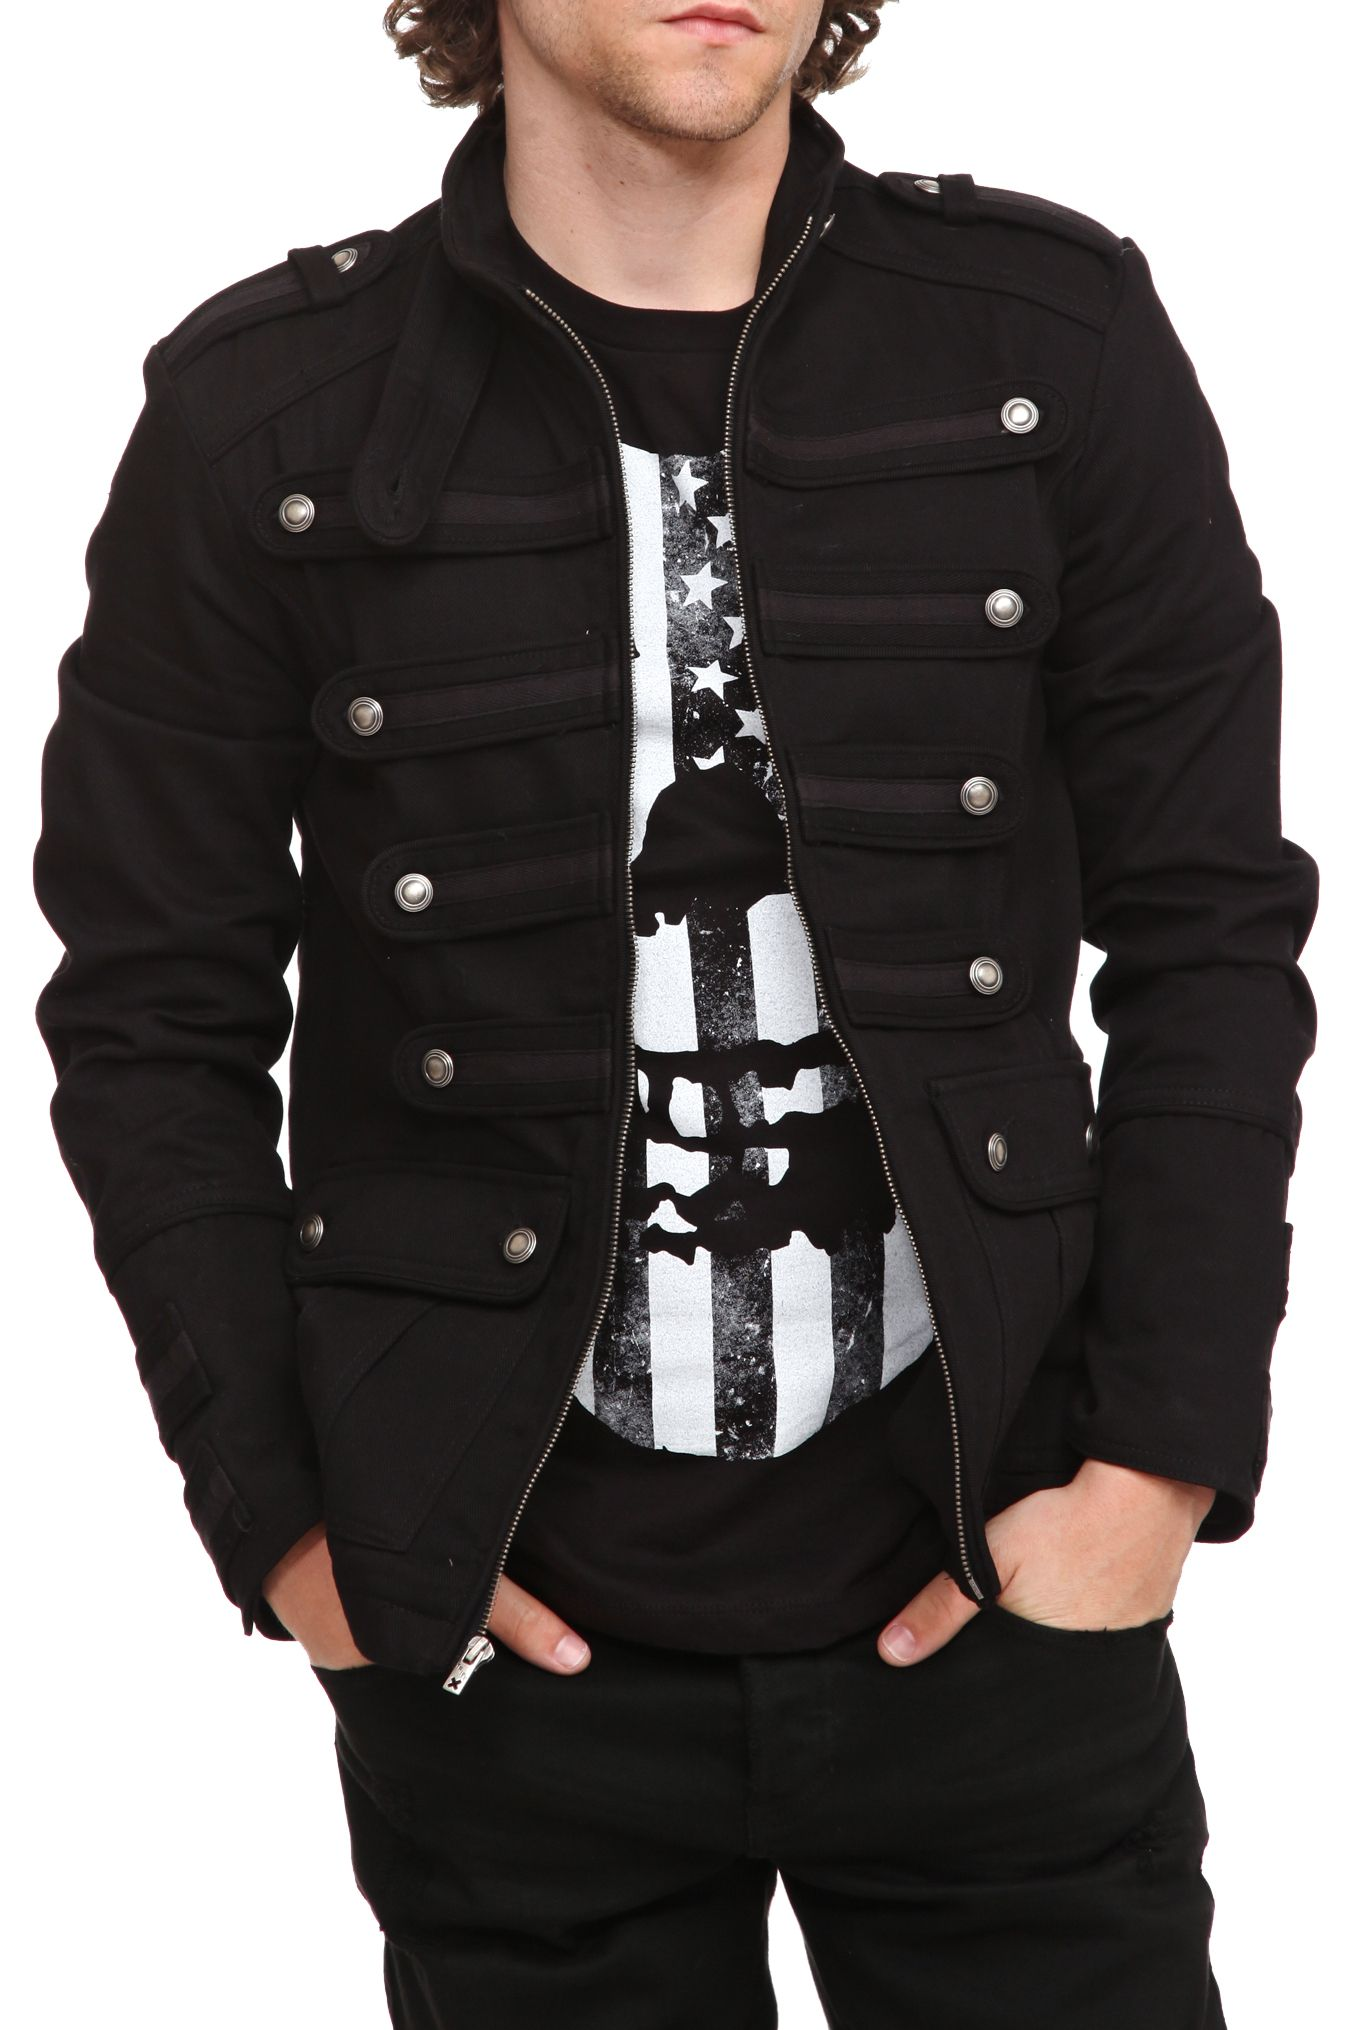 Tripp Black Guard Jacket Hot Topic Clothes Of Badassery M